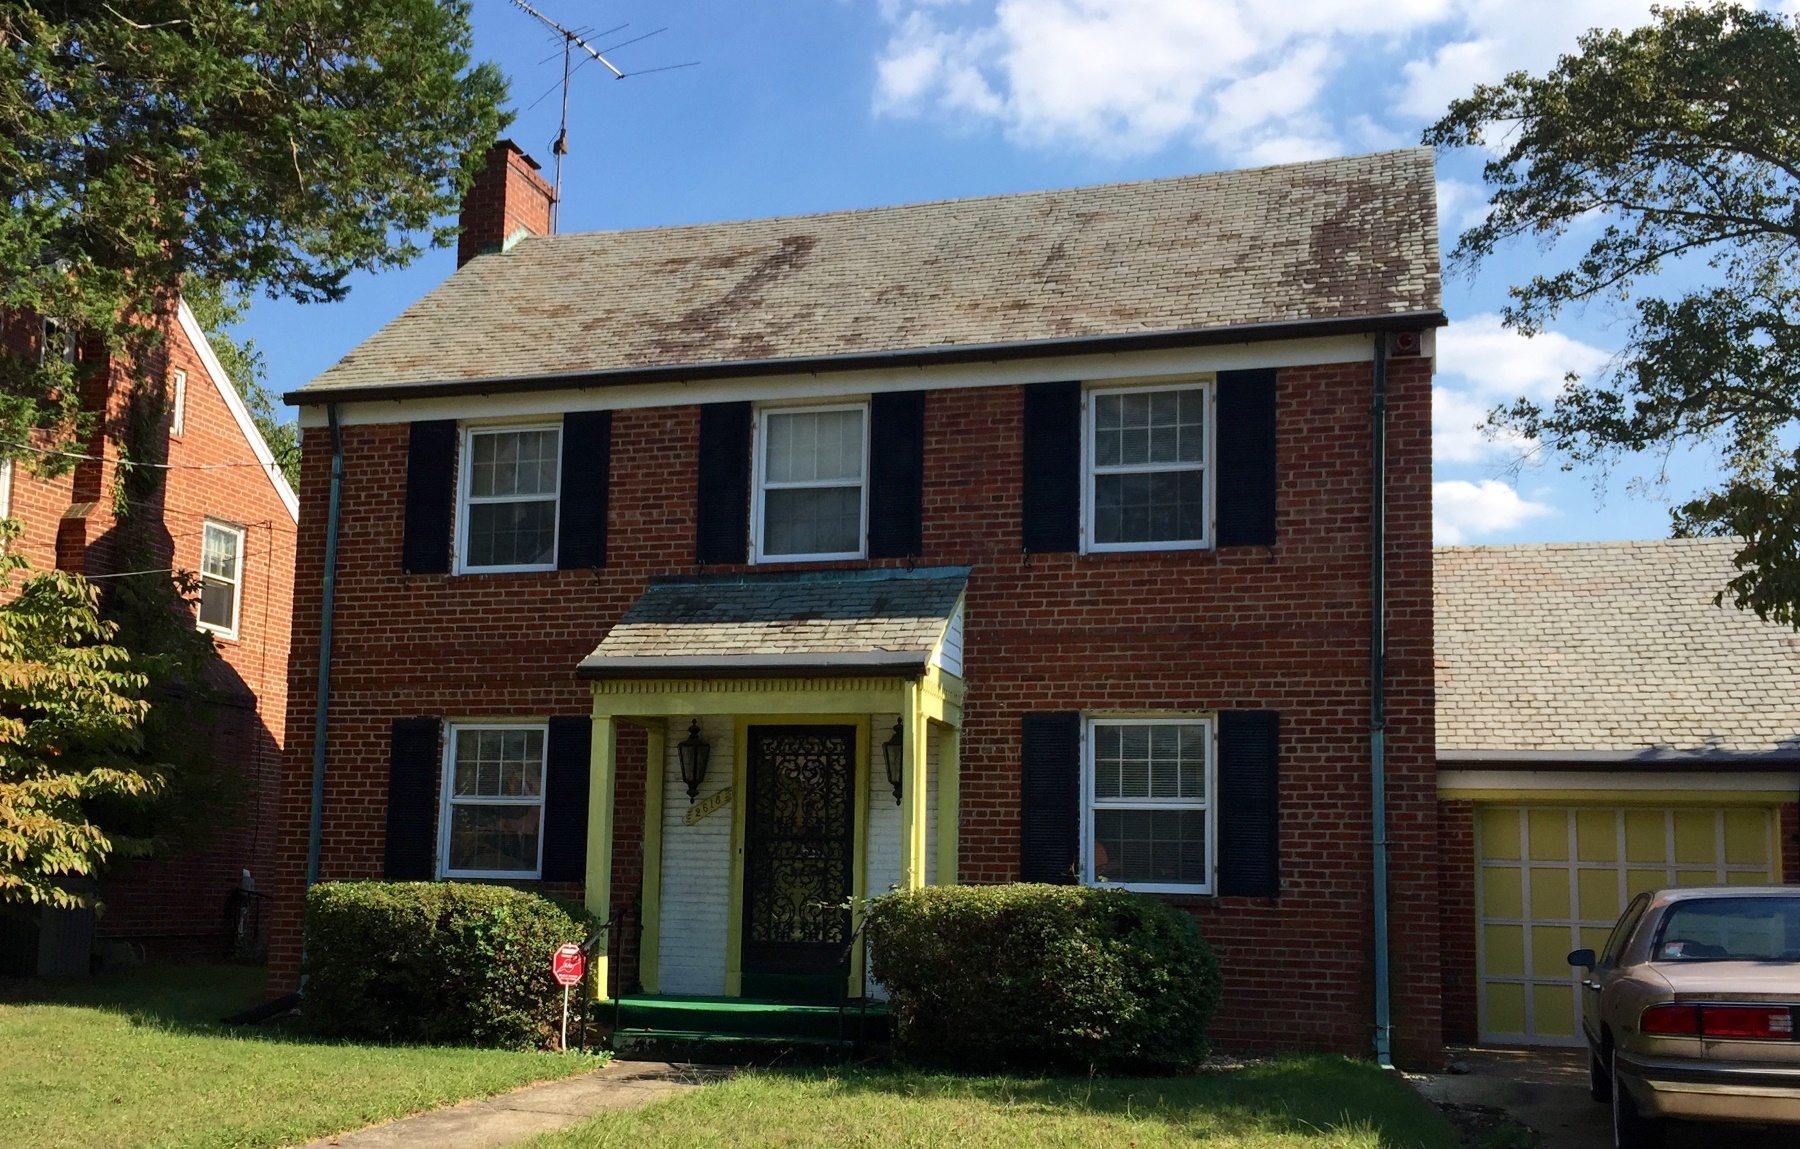 Single Family Home for Sale at 2618 Colston, Chevy Chase 2618 Colston Dr Chevy Chase, Maryland 20815 United States